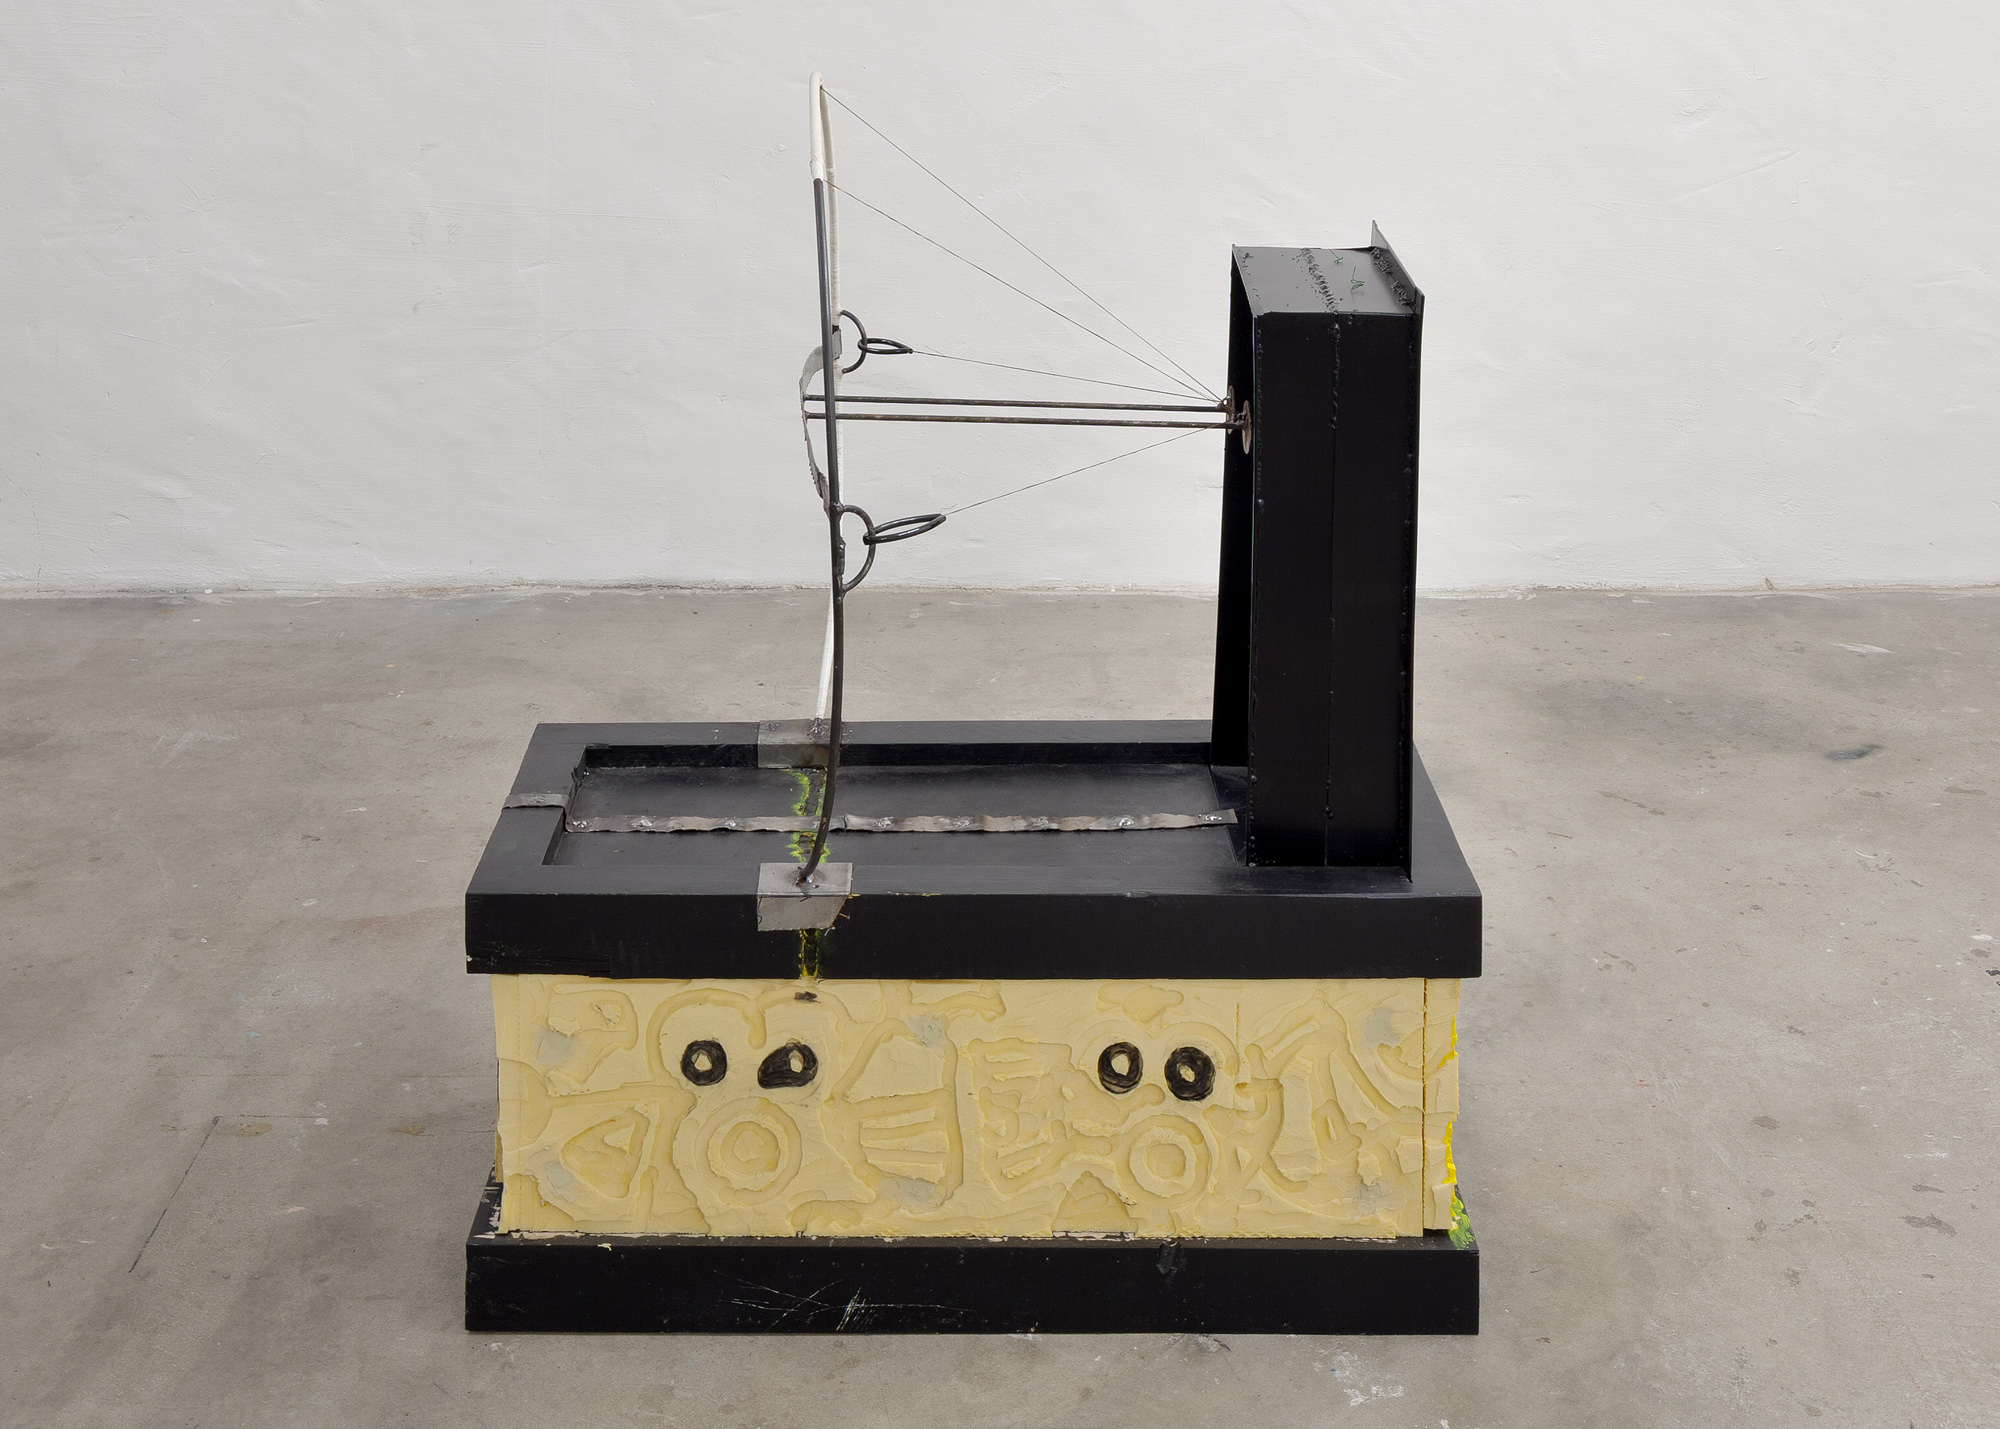 Untitled │ metal, plastic, wood, cardboard │ 2018-19 │ 110cm x 40cm x 80cm